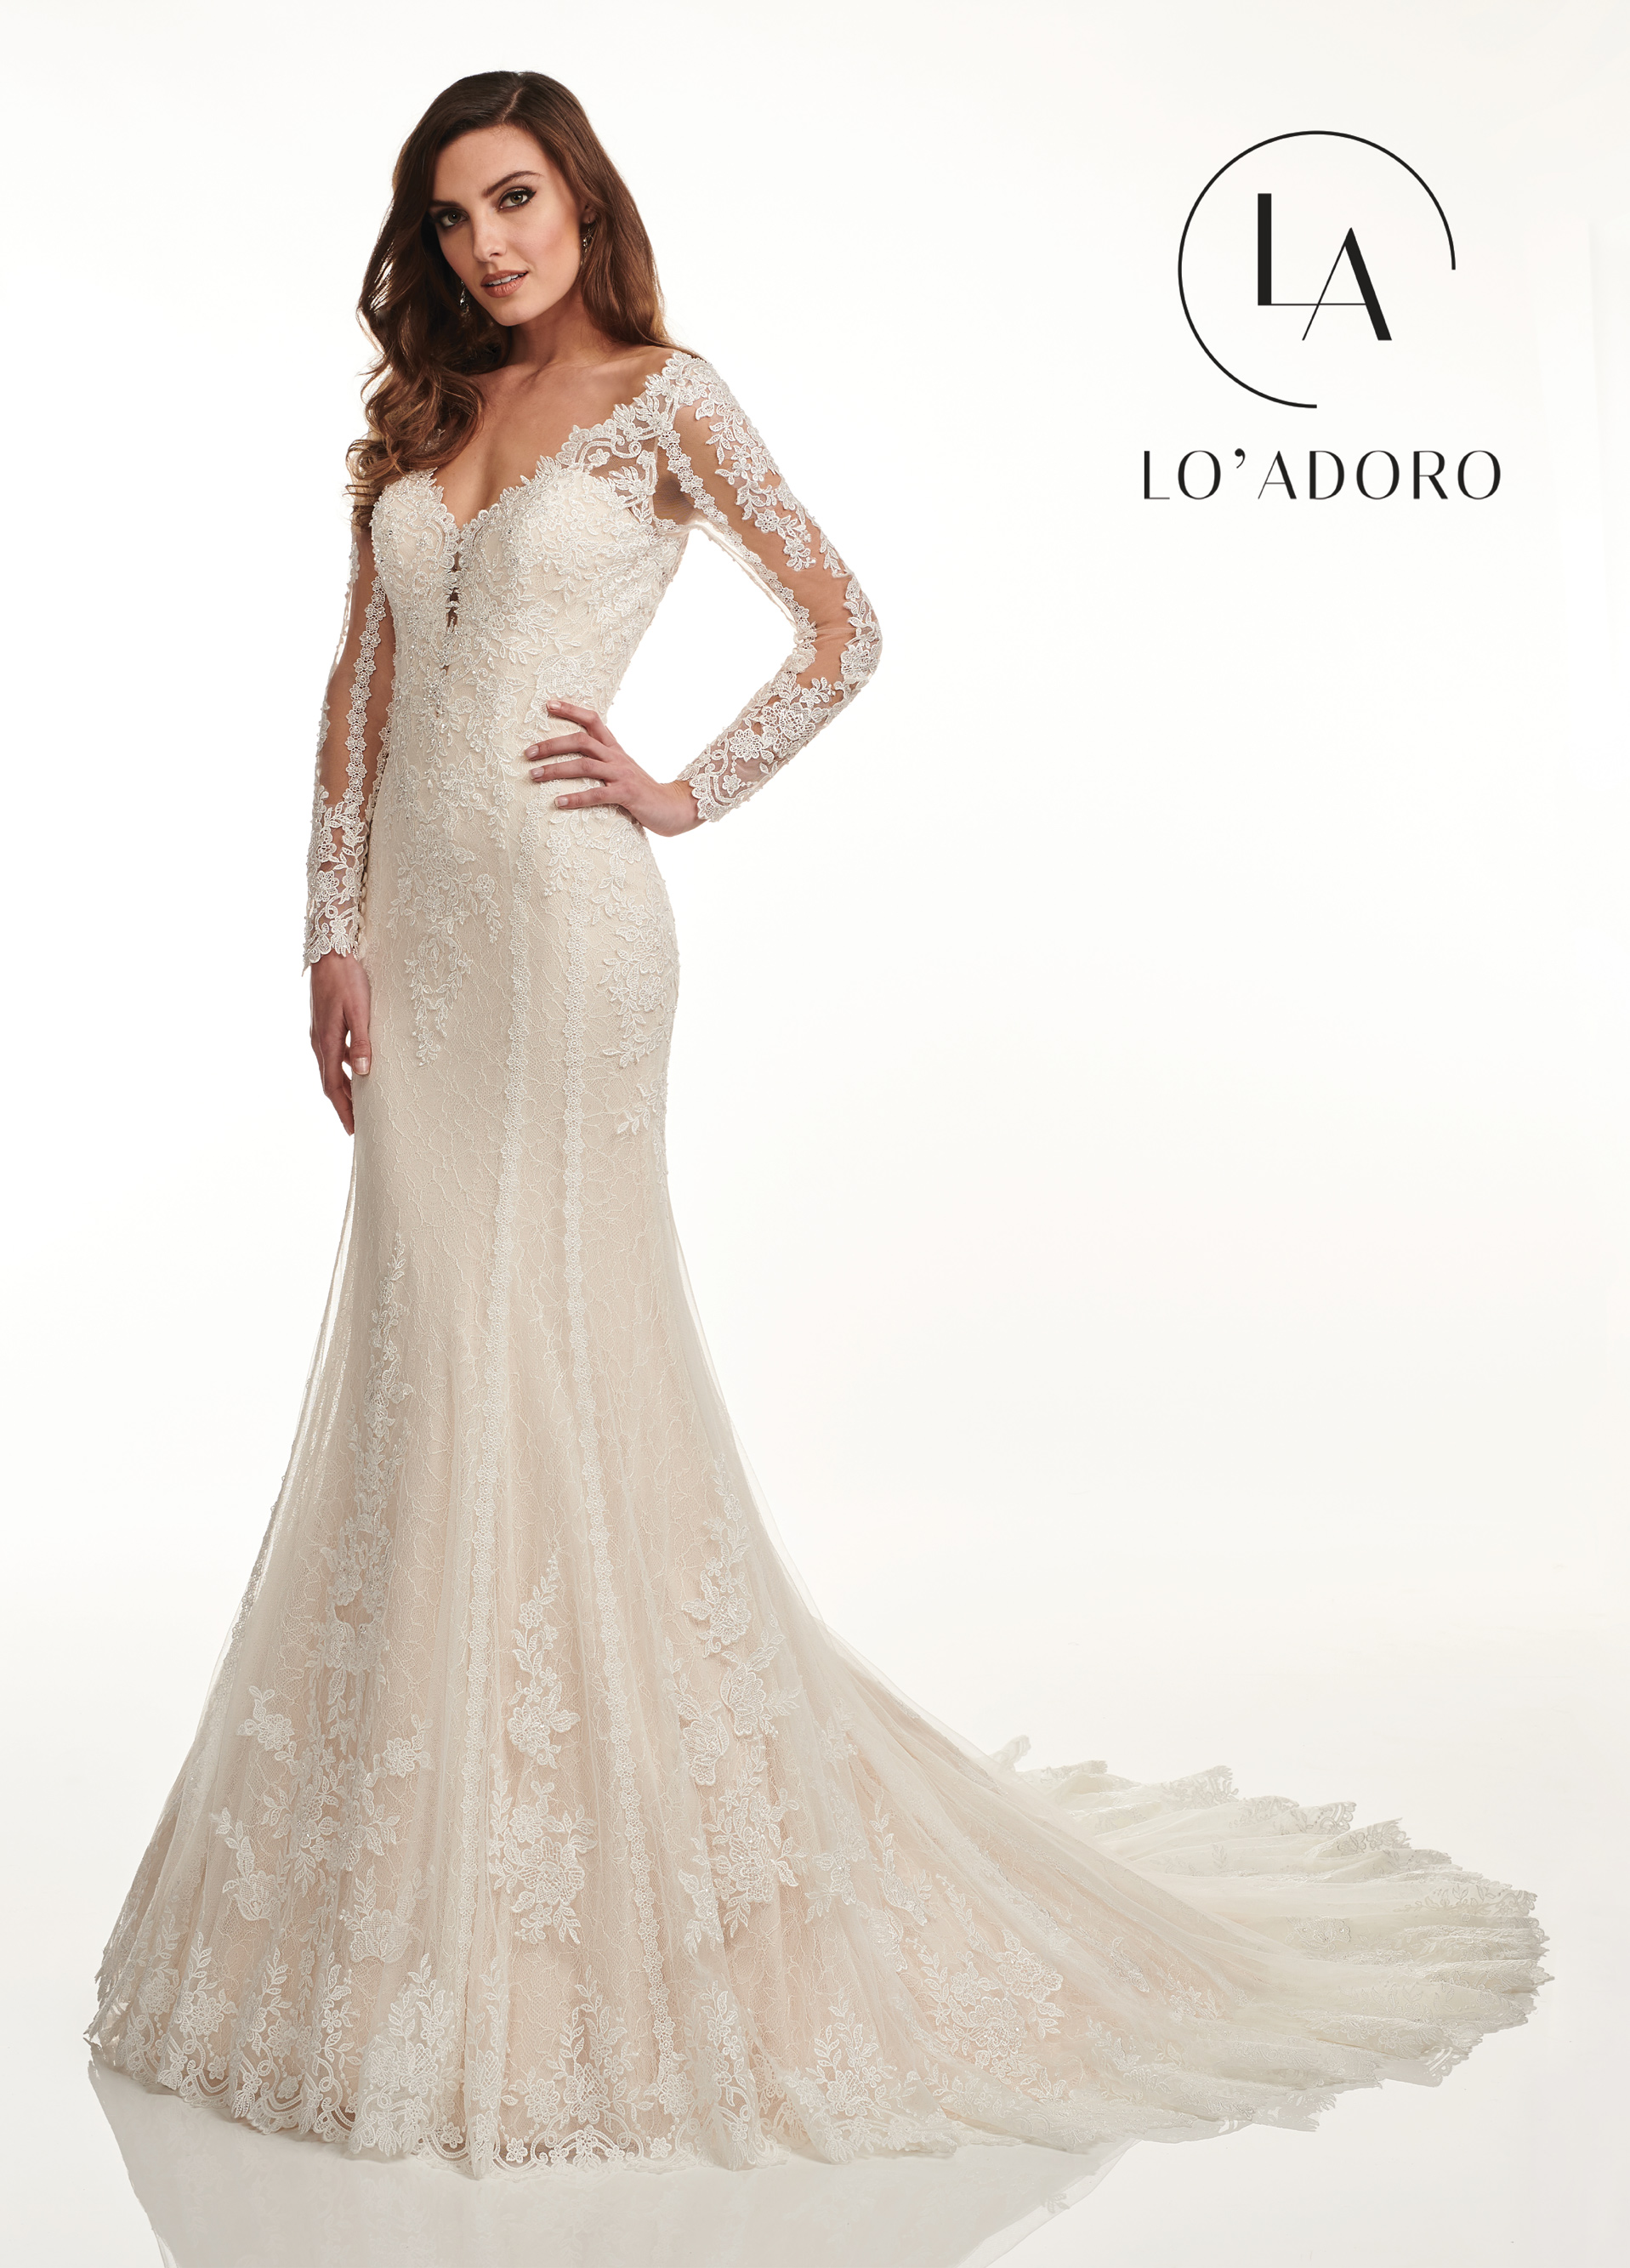 Wide Neck Fit & Flare Lo' Adoro Bridal in Nude Color